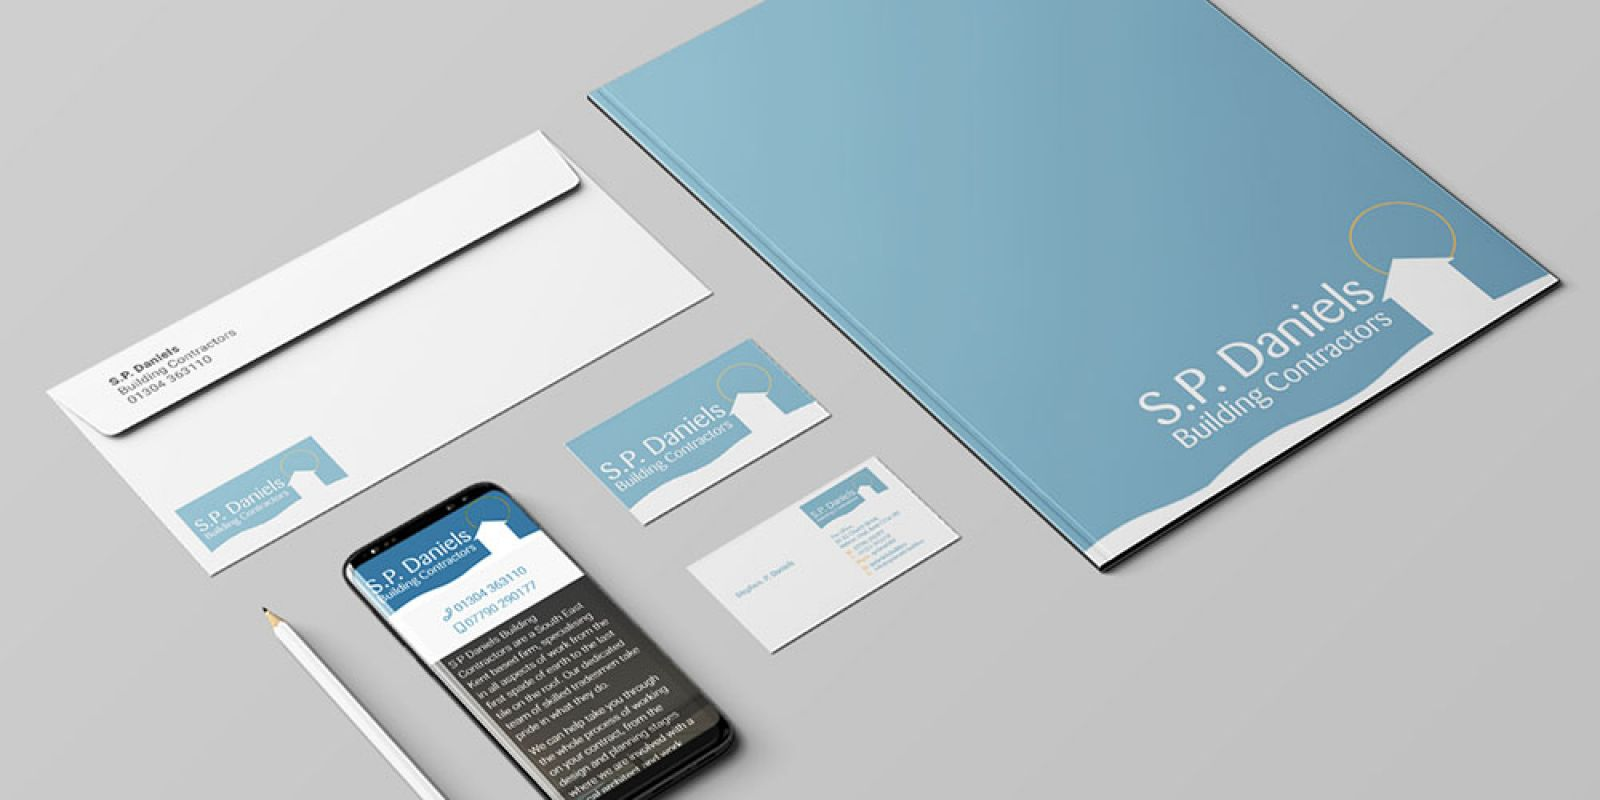 Branding / UX Design / Web Development